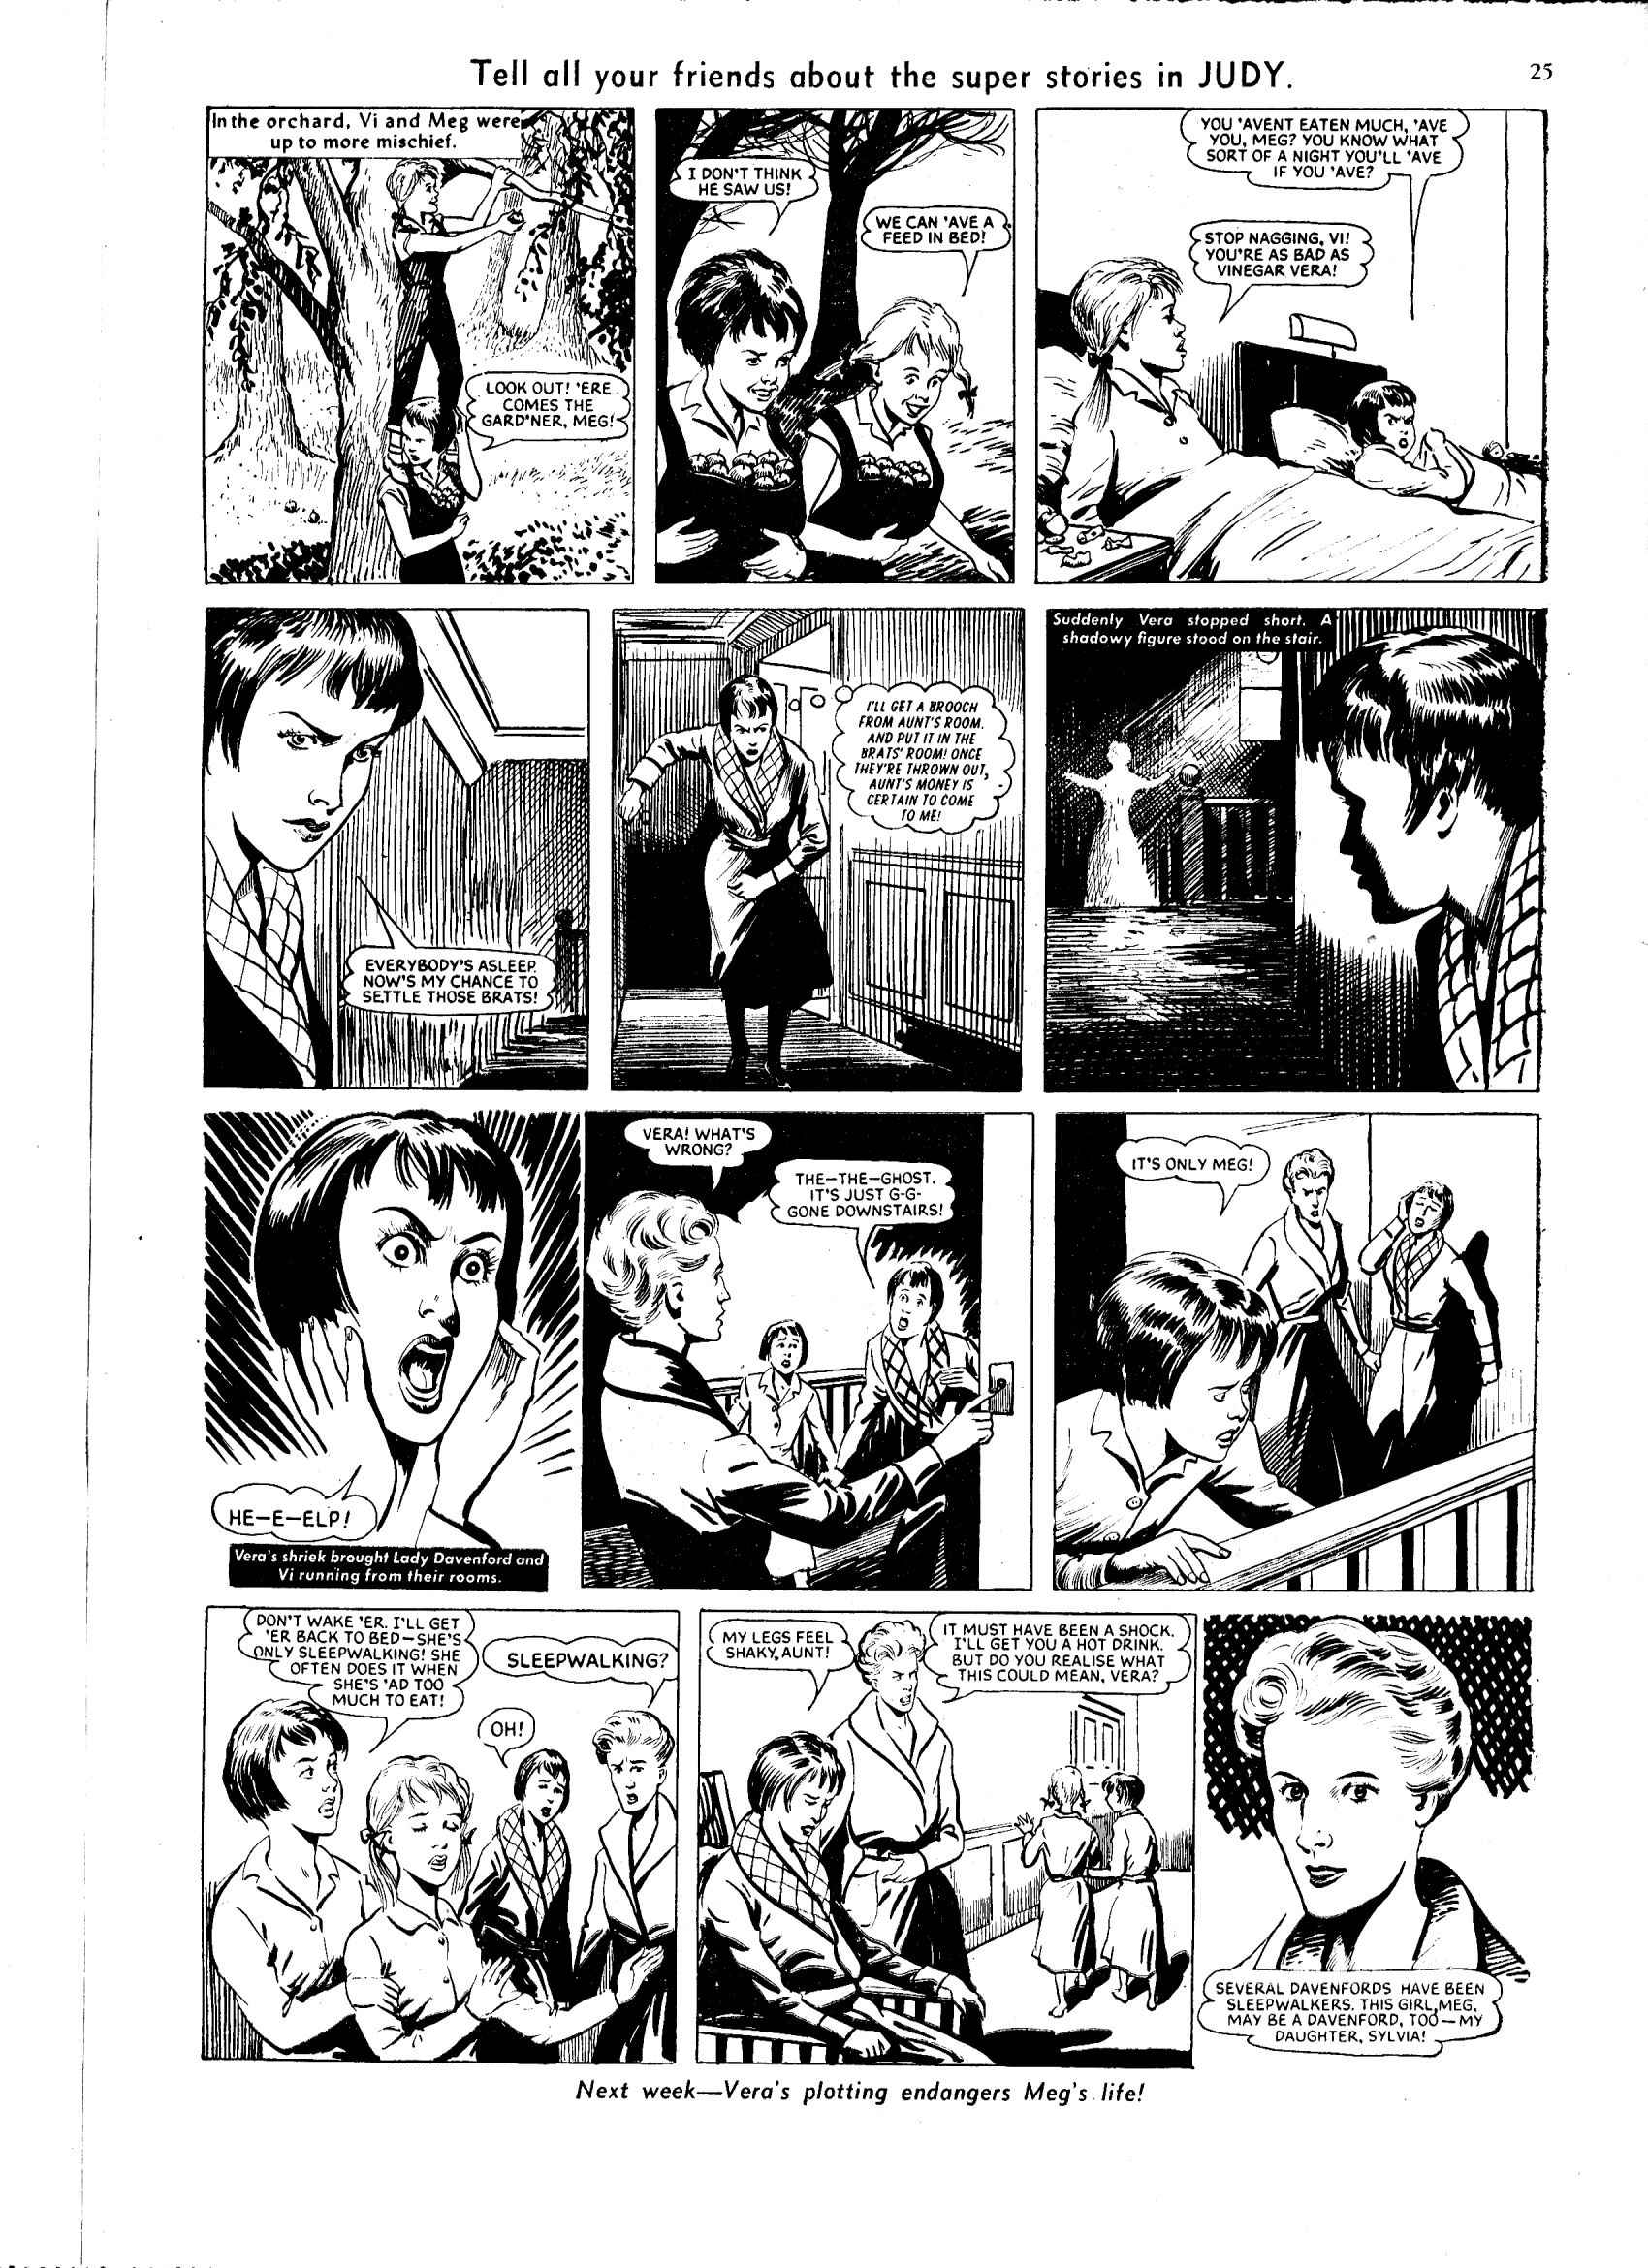 Read online Judy comic -  Issue #60 - 25